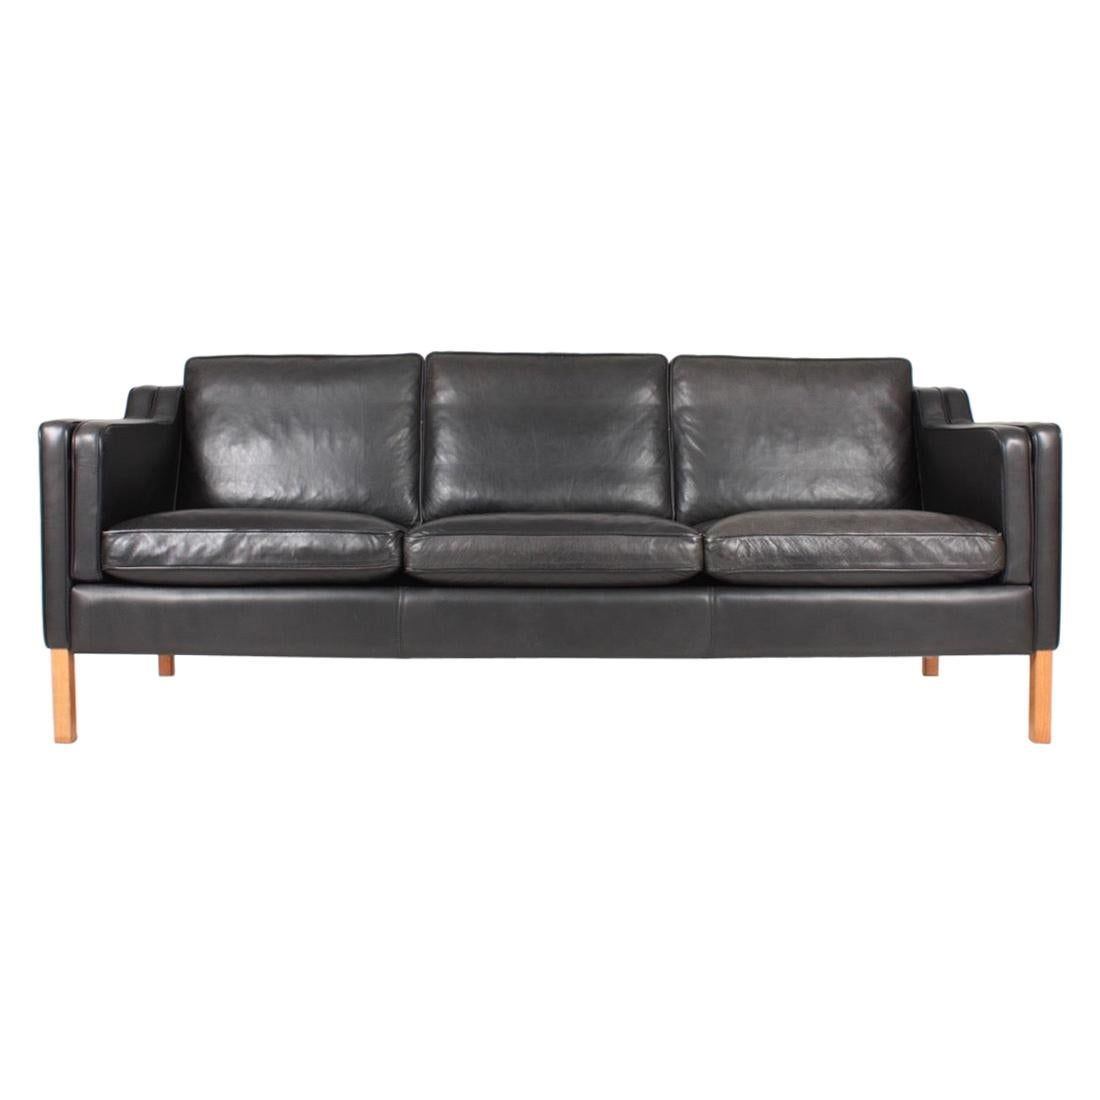 Danish Modern Three-Seat Sofa in Patinated Leather by Stouby, 1980s